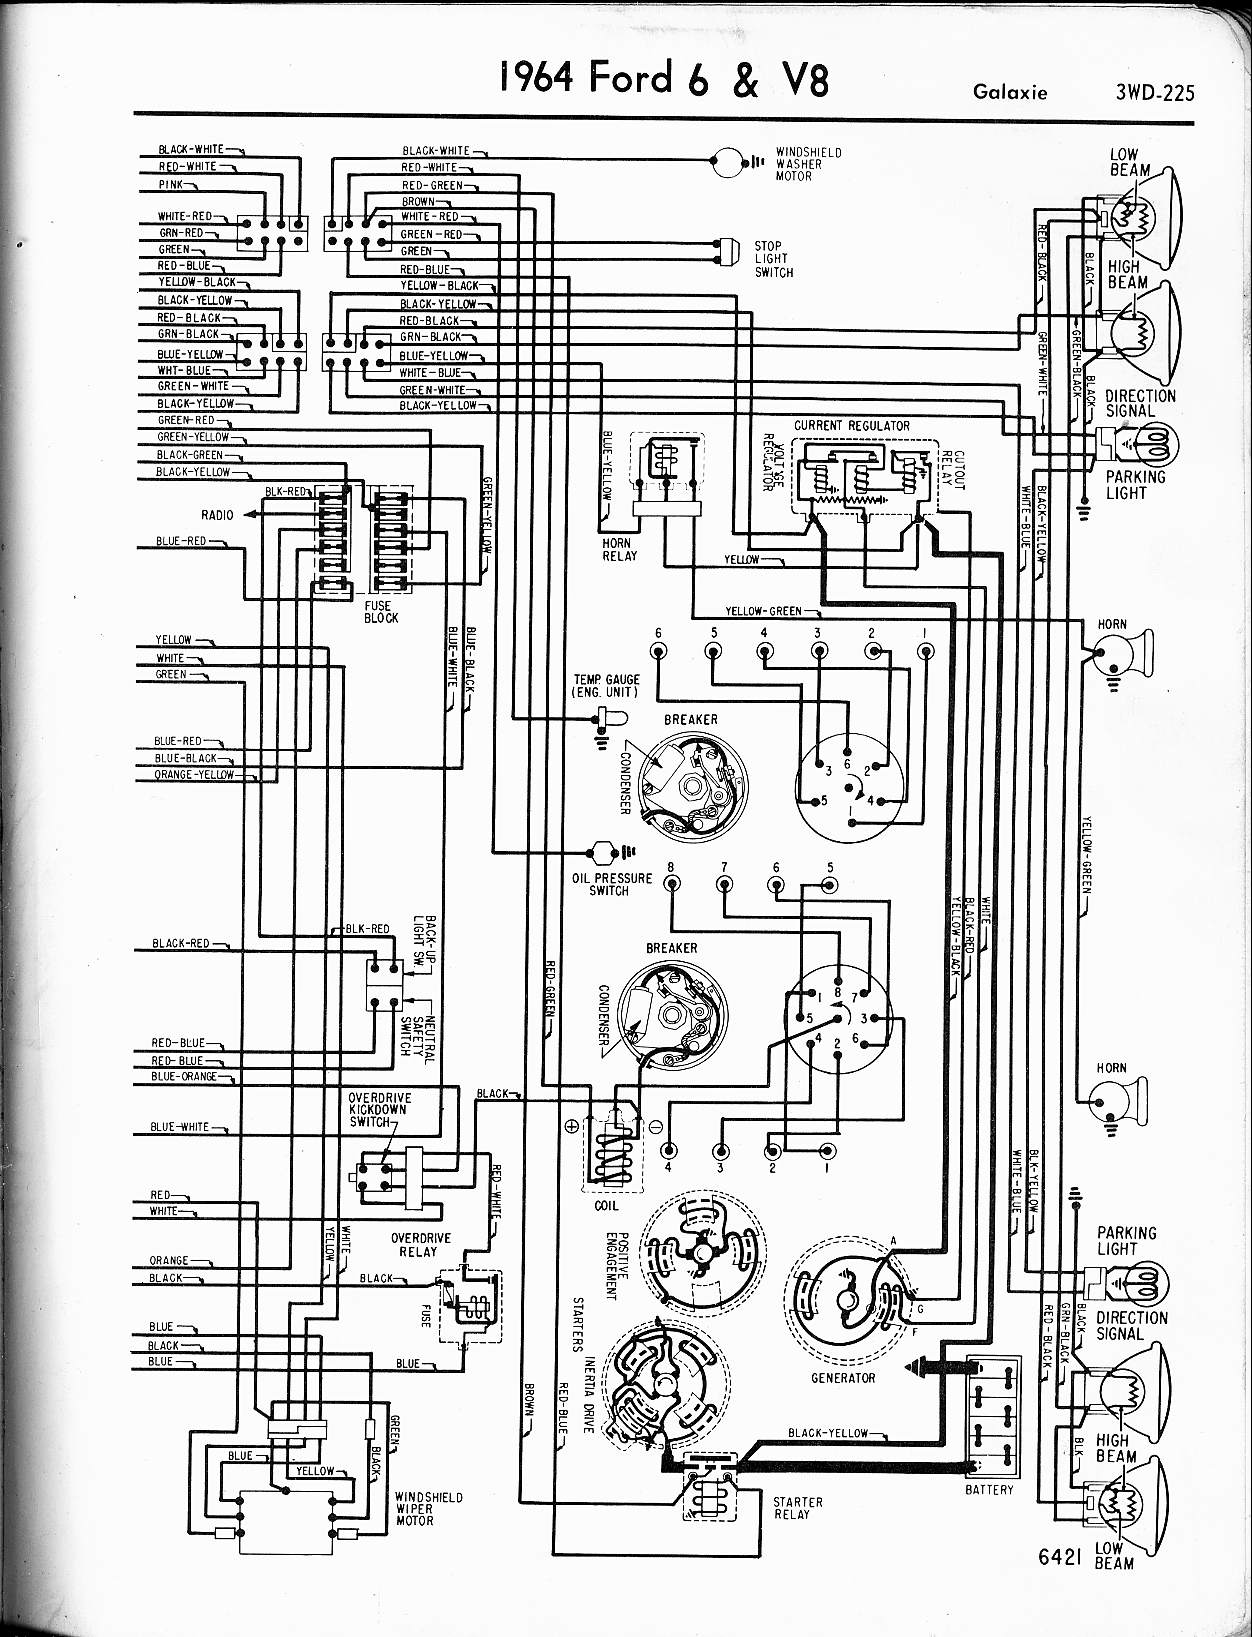 1974 Chevy C10 Wiring Diagram moreover 583945 Wiring Schematic 1963 A moreover 165cc Harley Engine Diagram together with 2006 Ford Fusion Fuse Box Location further Isuzu 3lb1 Engine Wiring Diagram. on wiring diagrams for cars